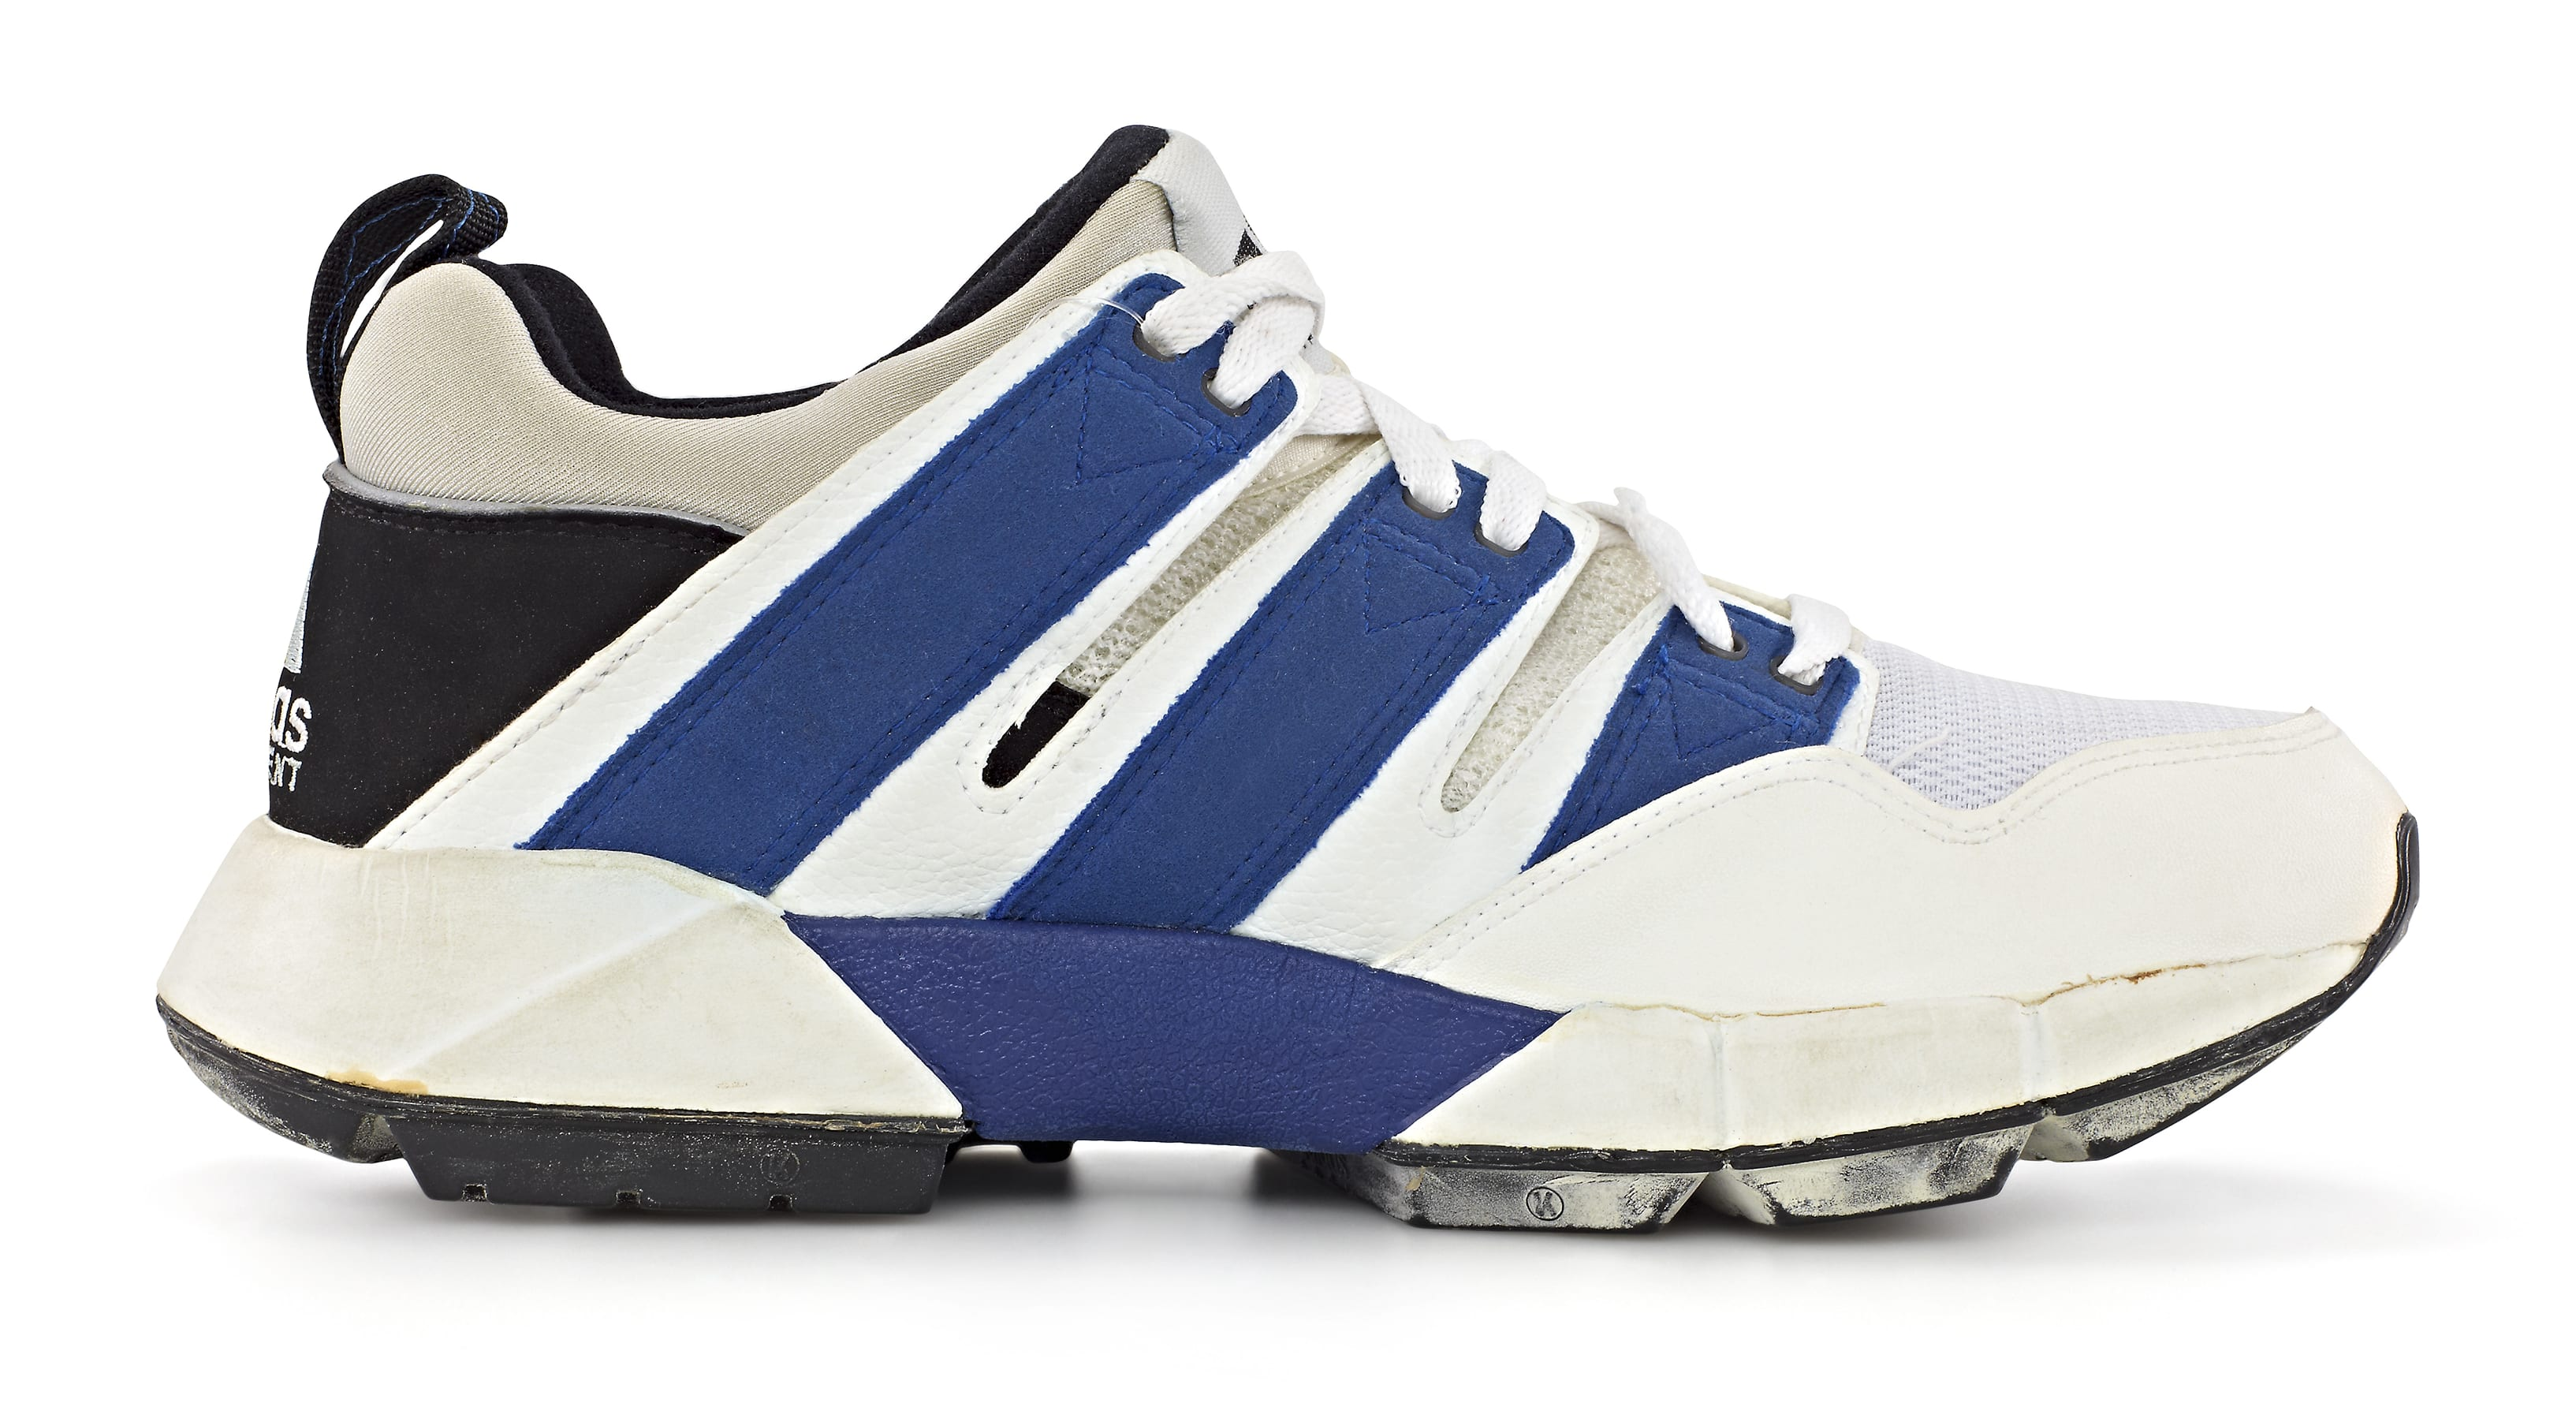 Adidas P.O.D. System Archive Inspiration